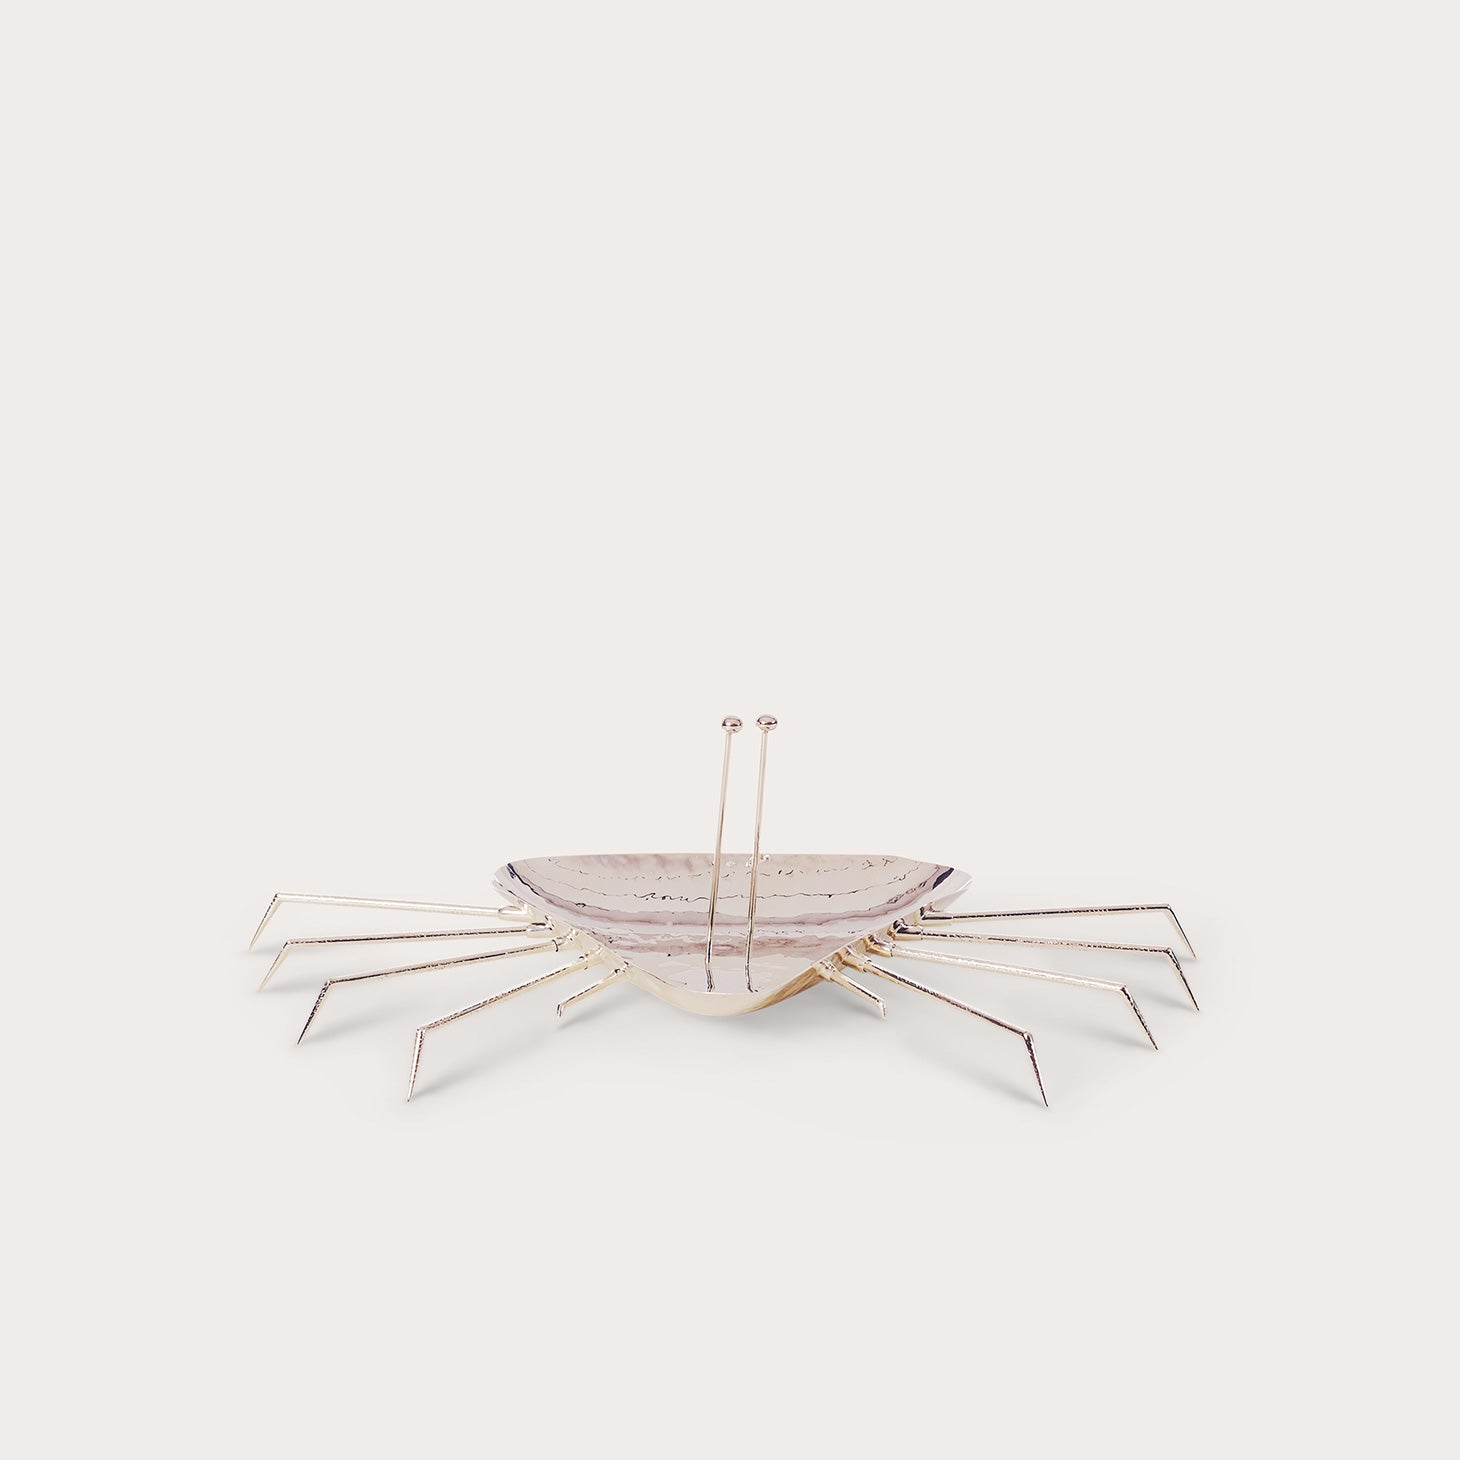 Fruit Bowl - Crab Accessories Yabu Pushelberg Designer Furniture Sku: 561-100-10054